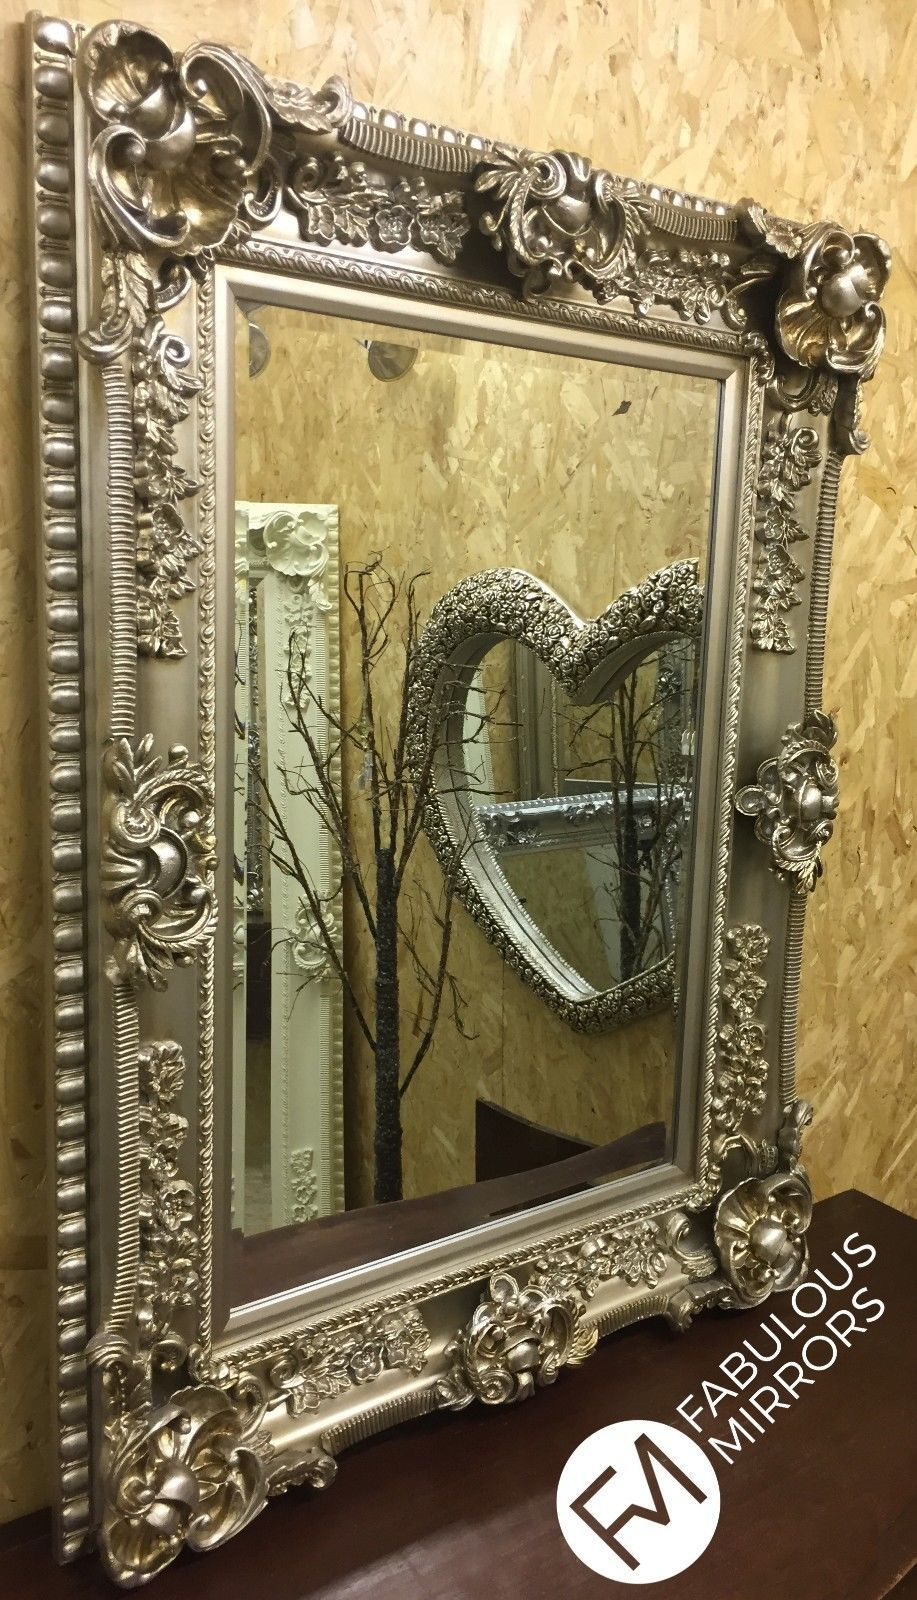 Champagne Ornate Regal Chunky Decorative Wall Mirror Rrp